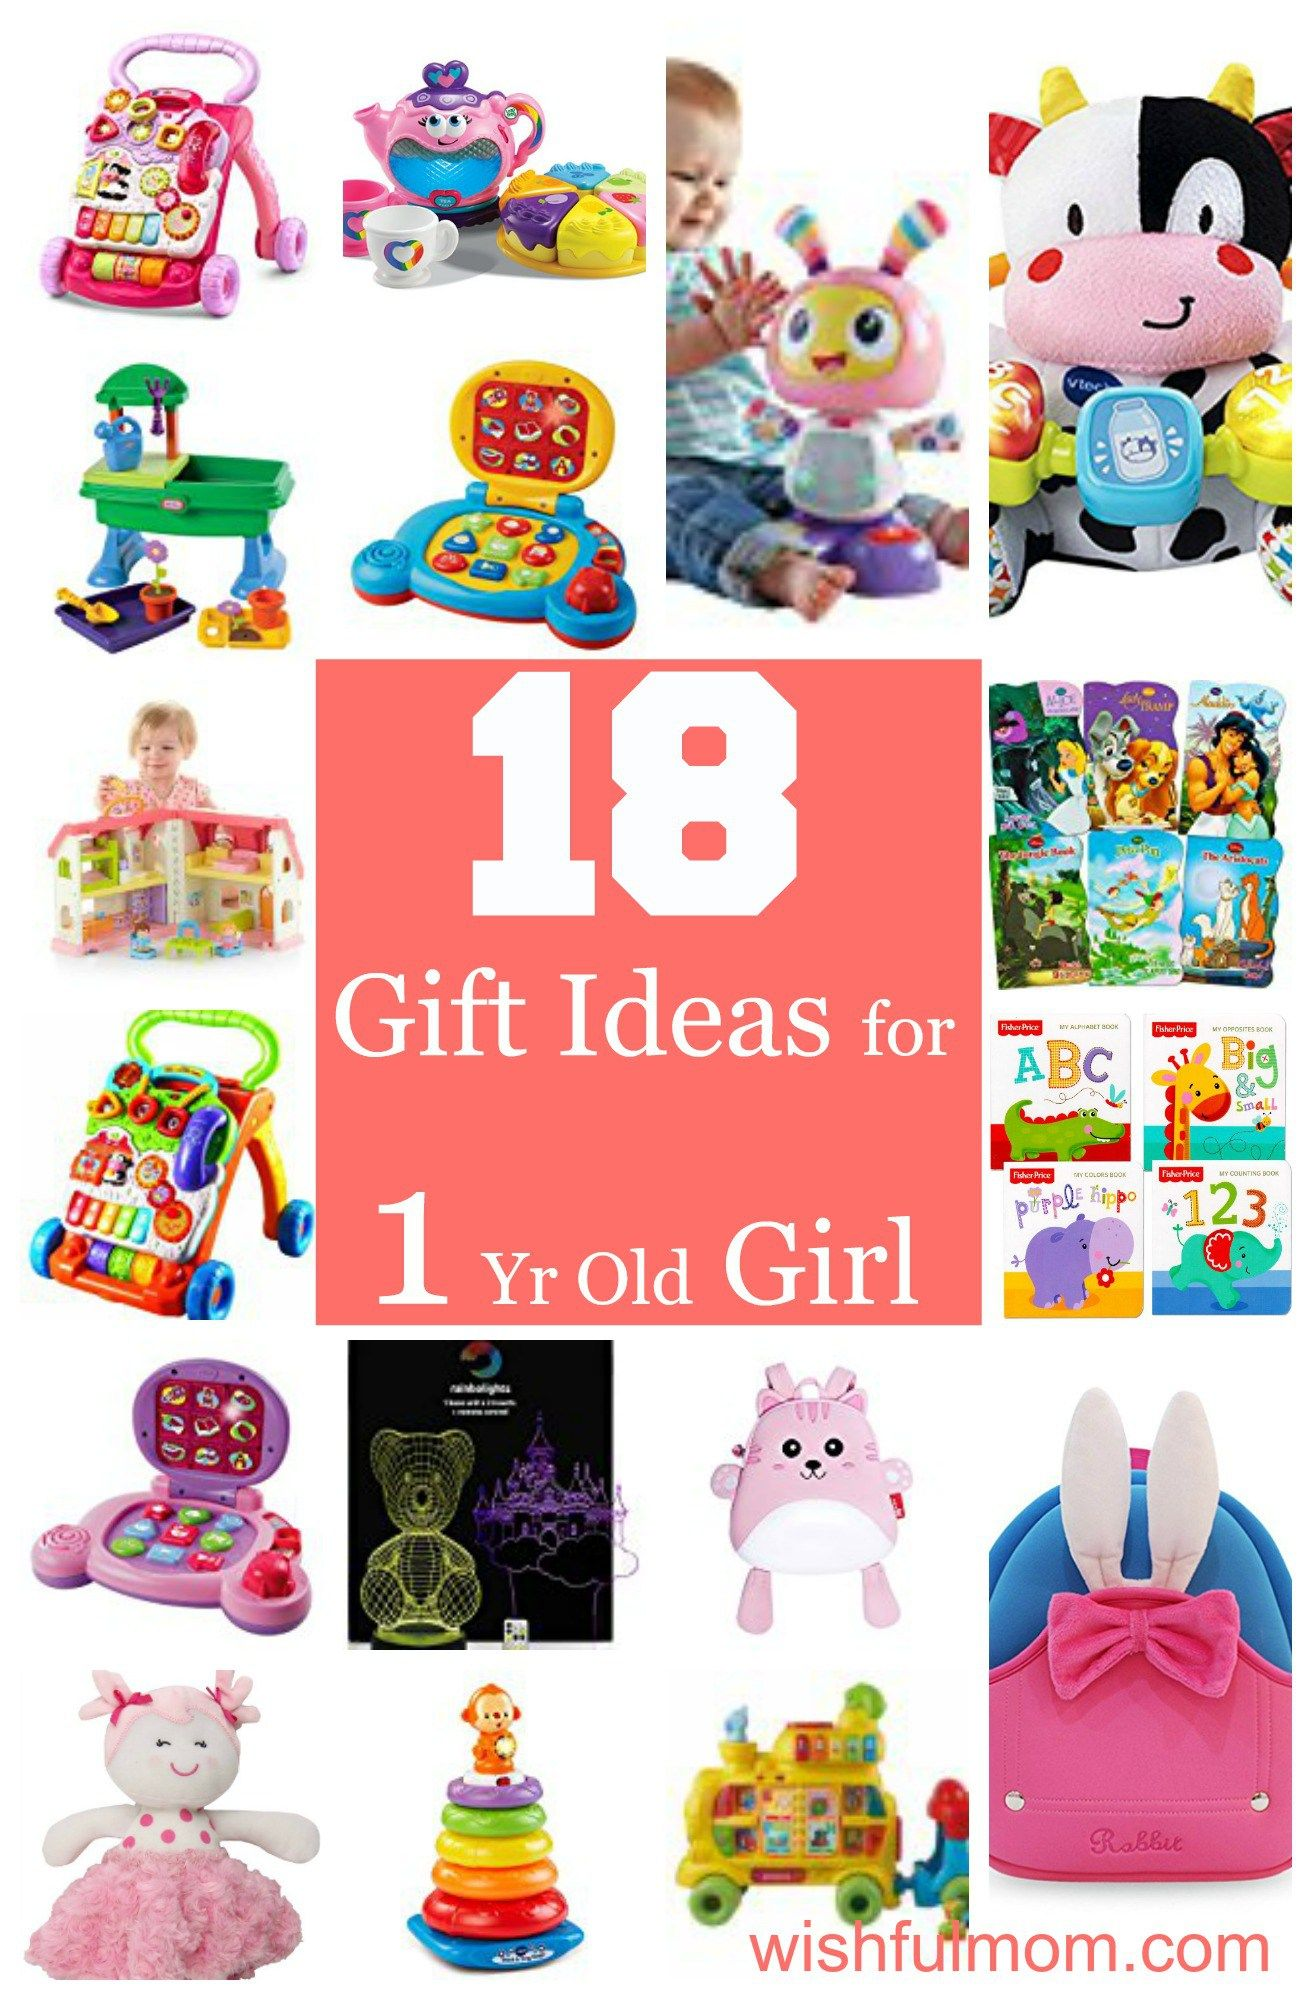 18 gift ideas for a one year old girl | bloggers portal - no posting